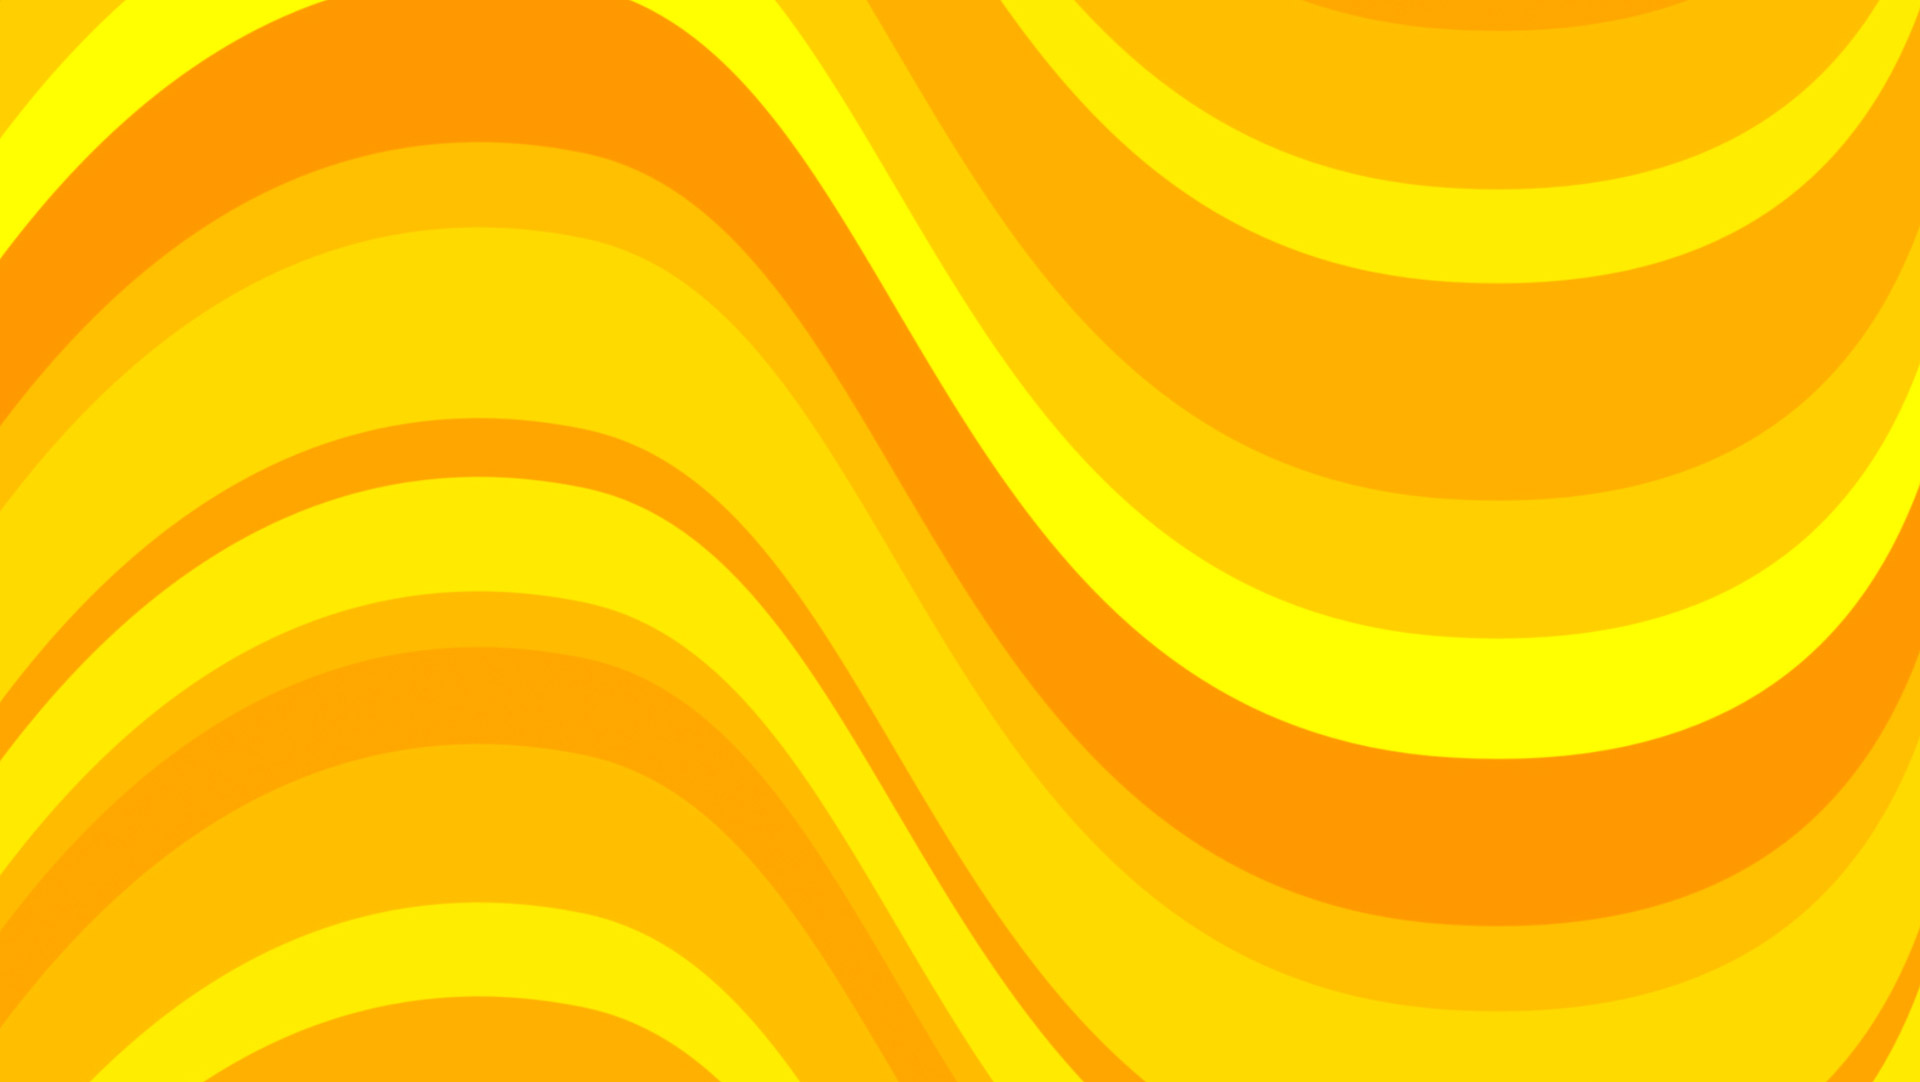 yellow abstract wallpaper backgrounds   wallpapersafari